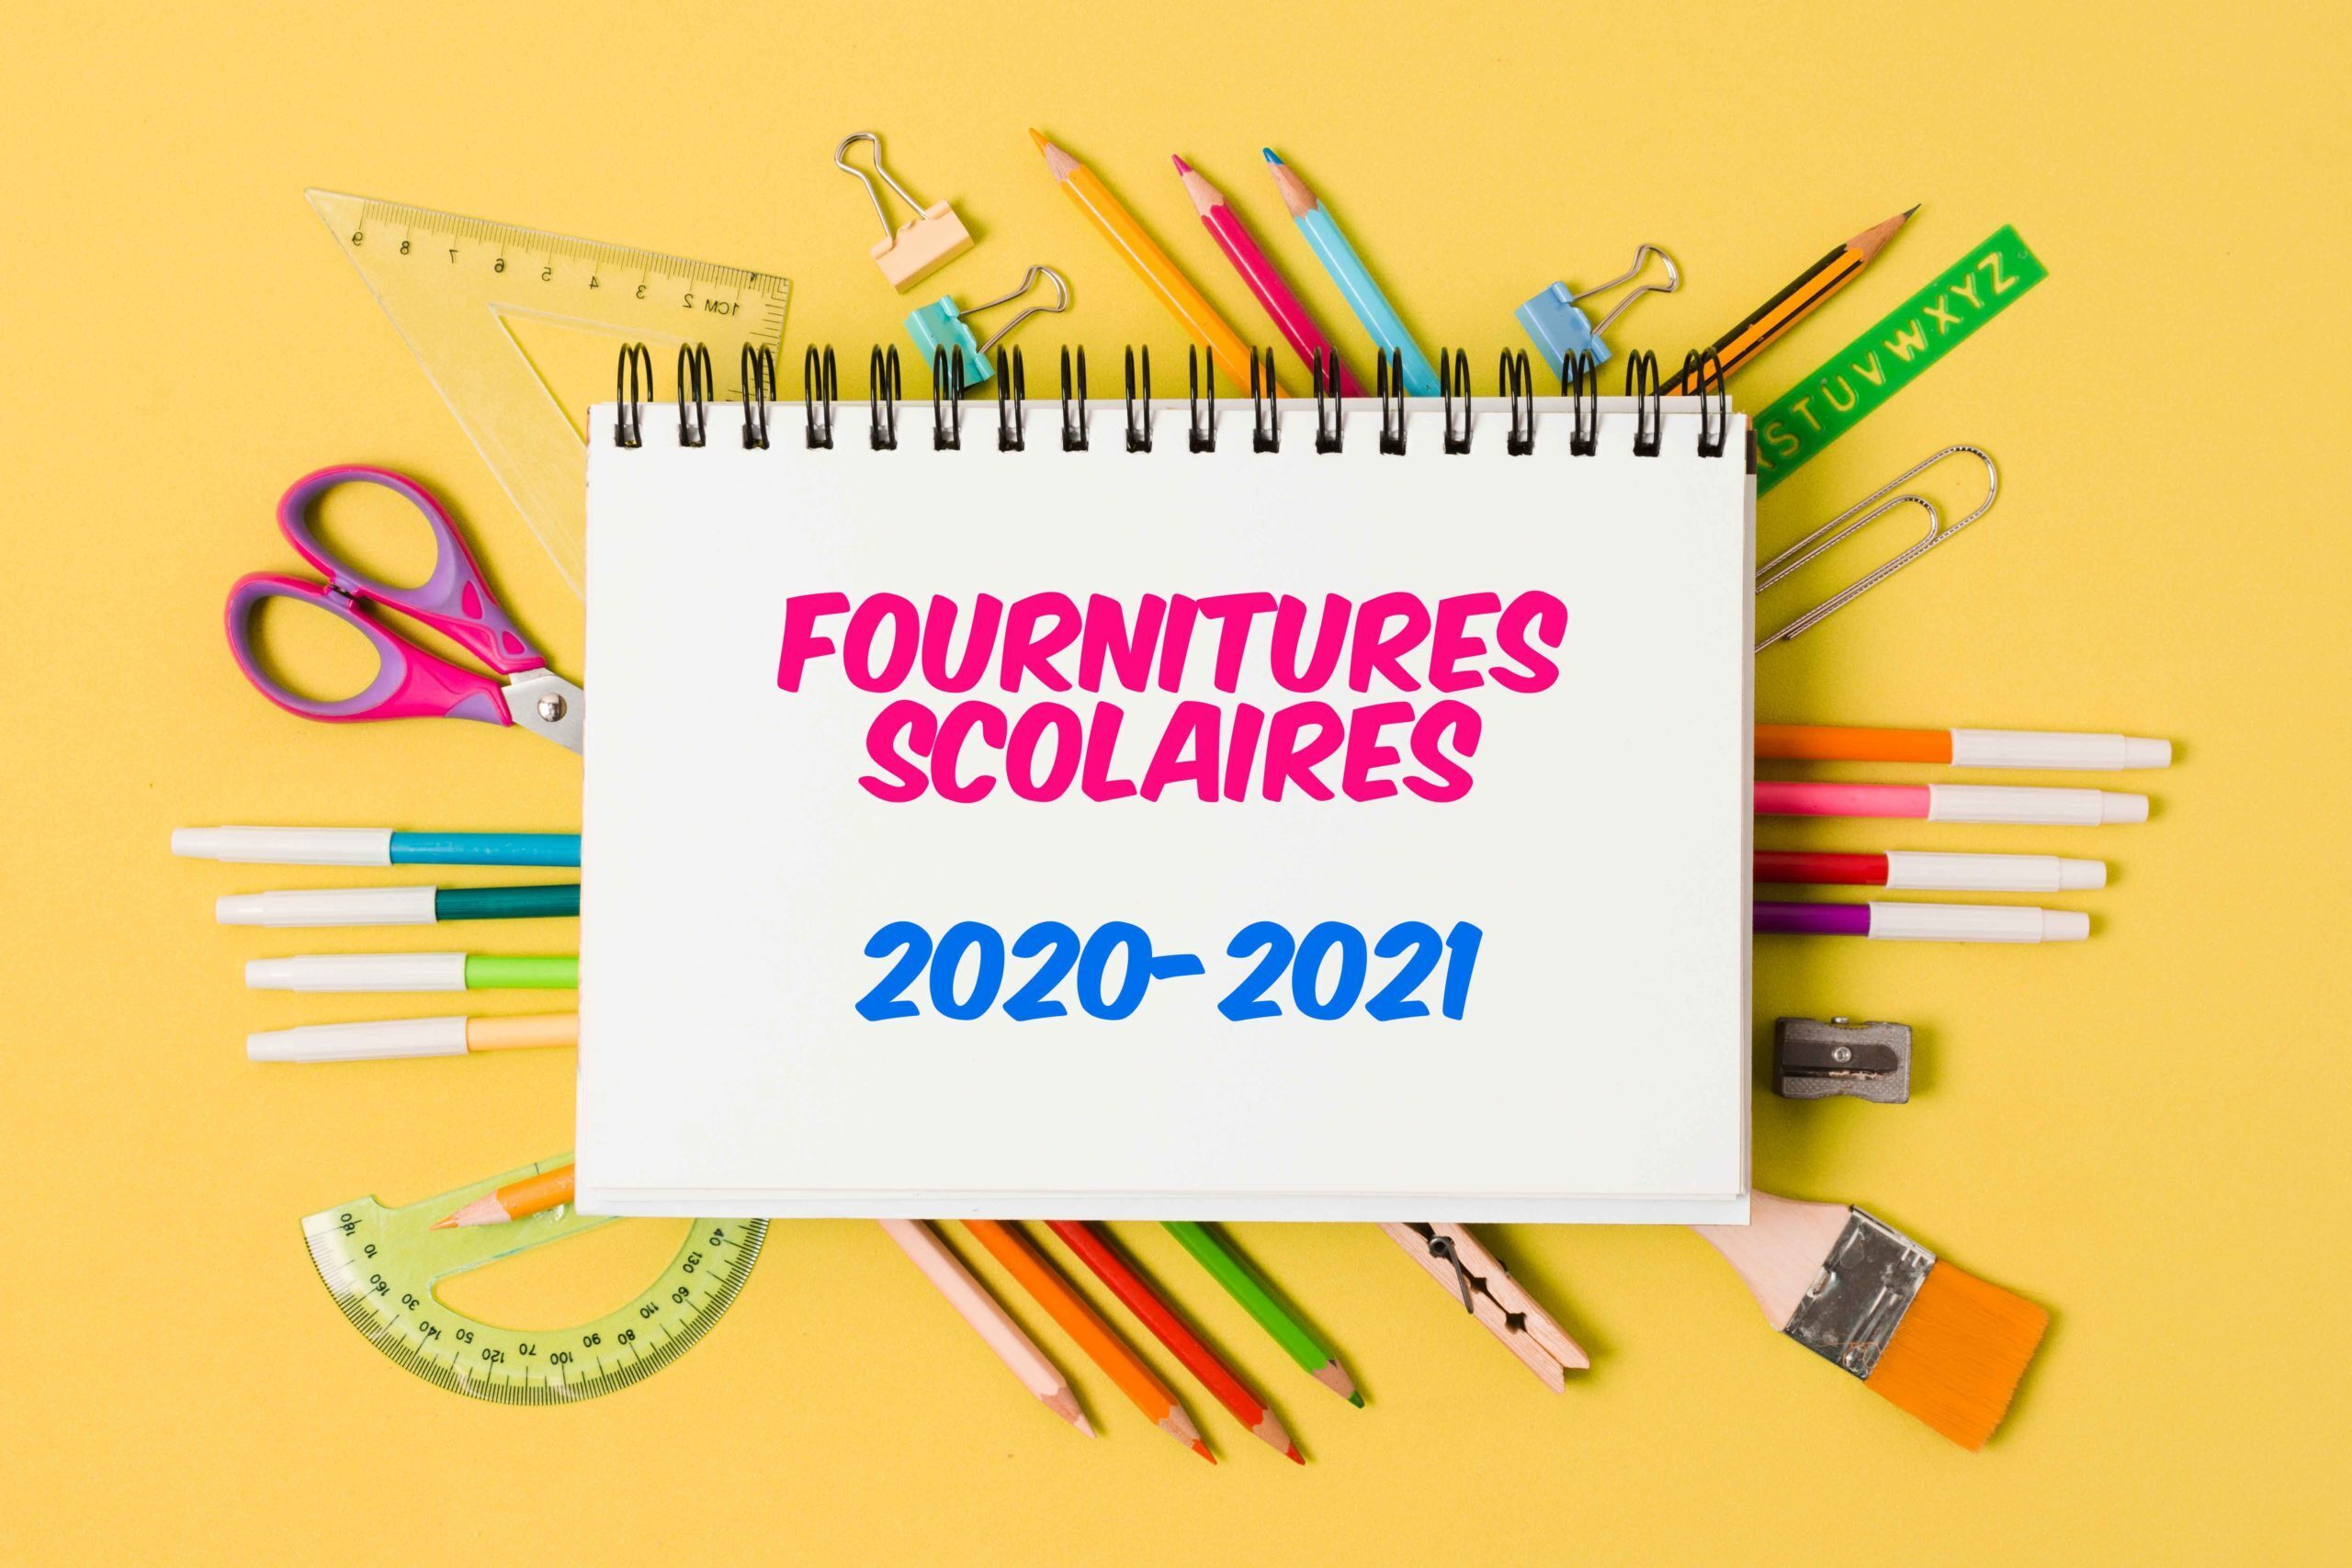 Fournitures-scolaires-2020-2021-scaled.jpg